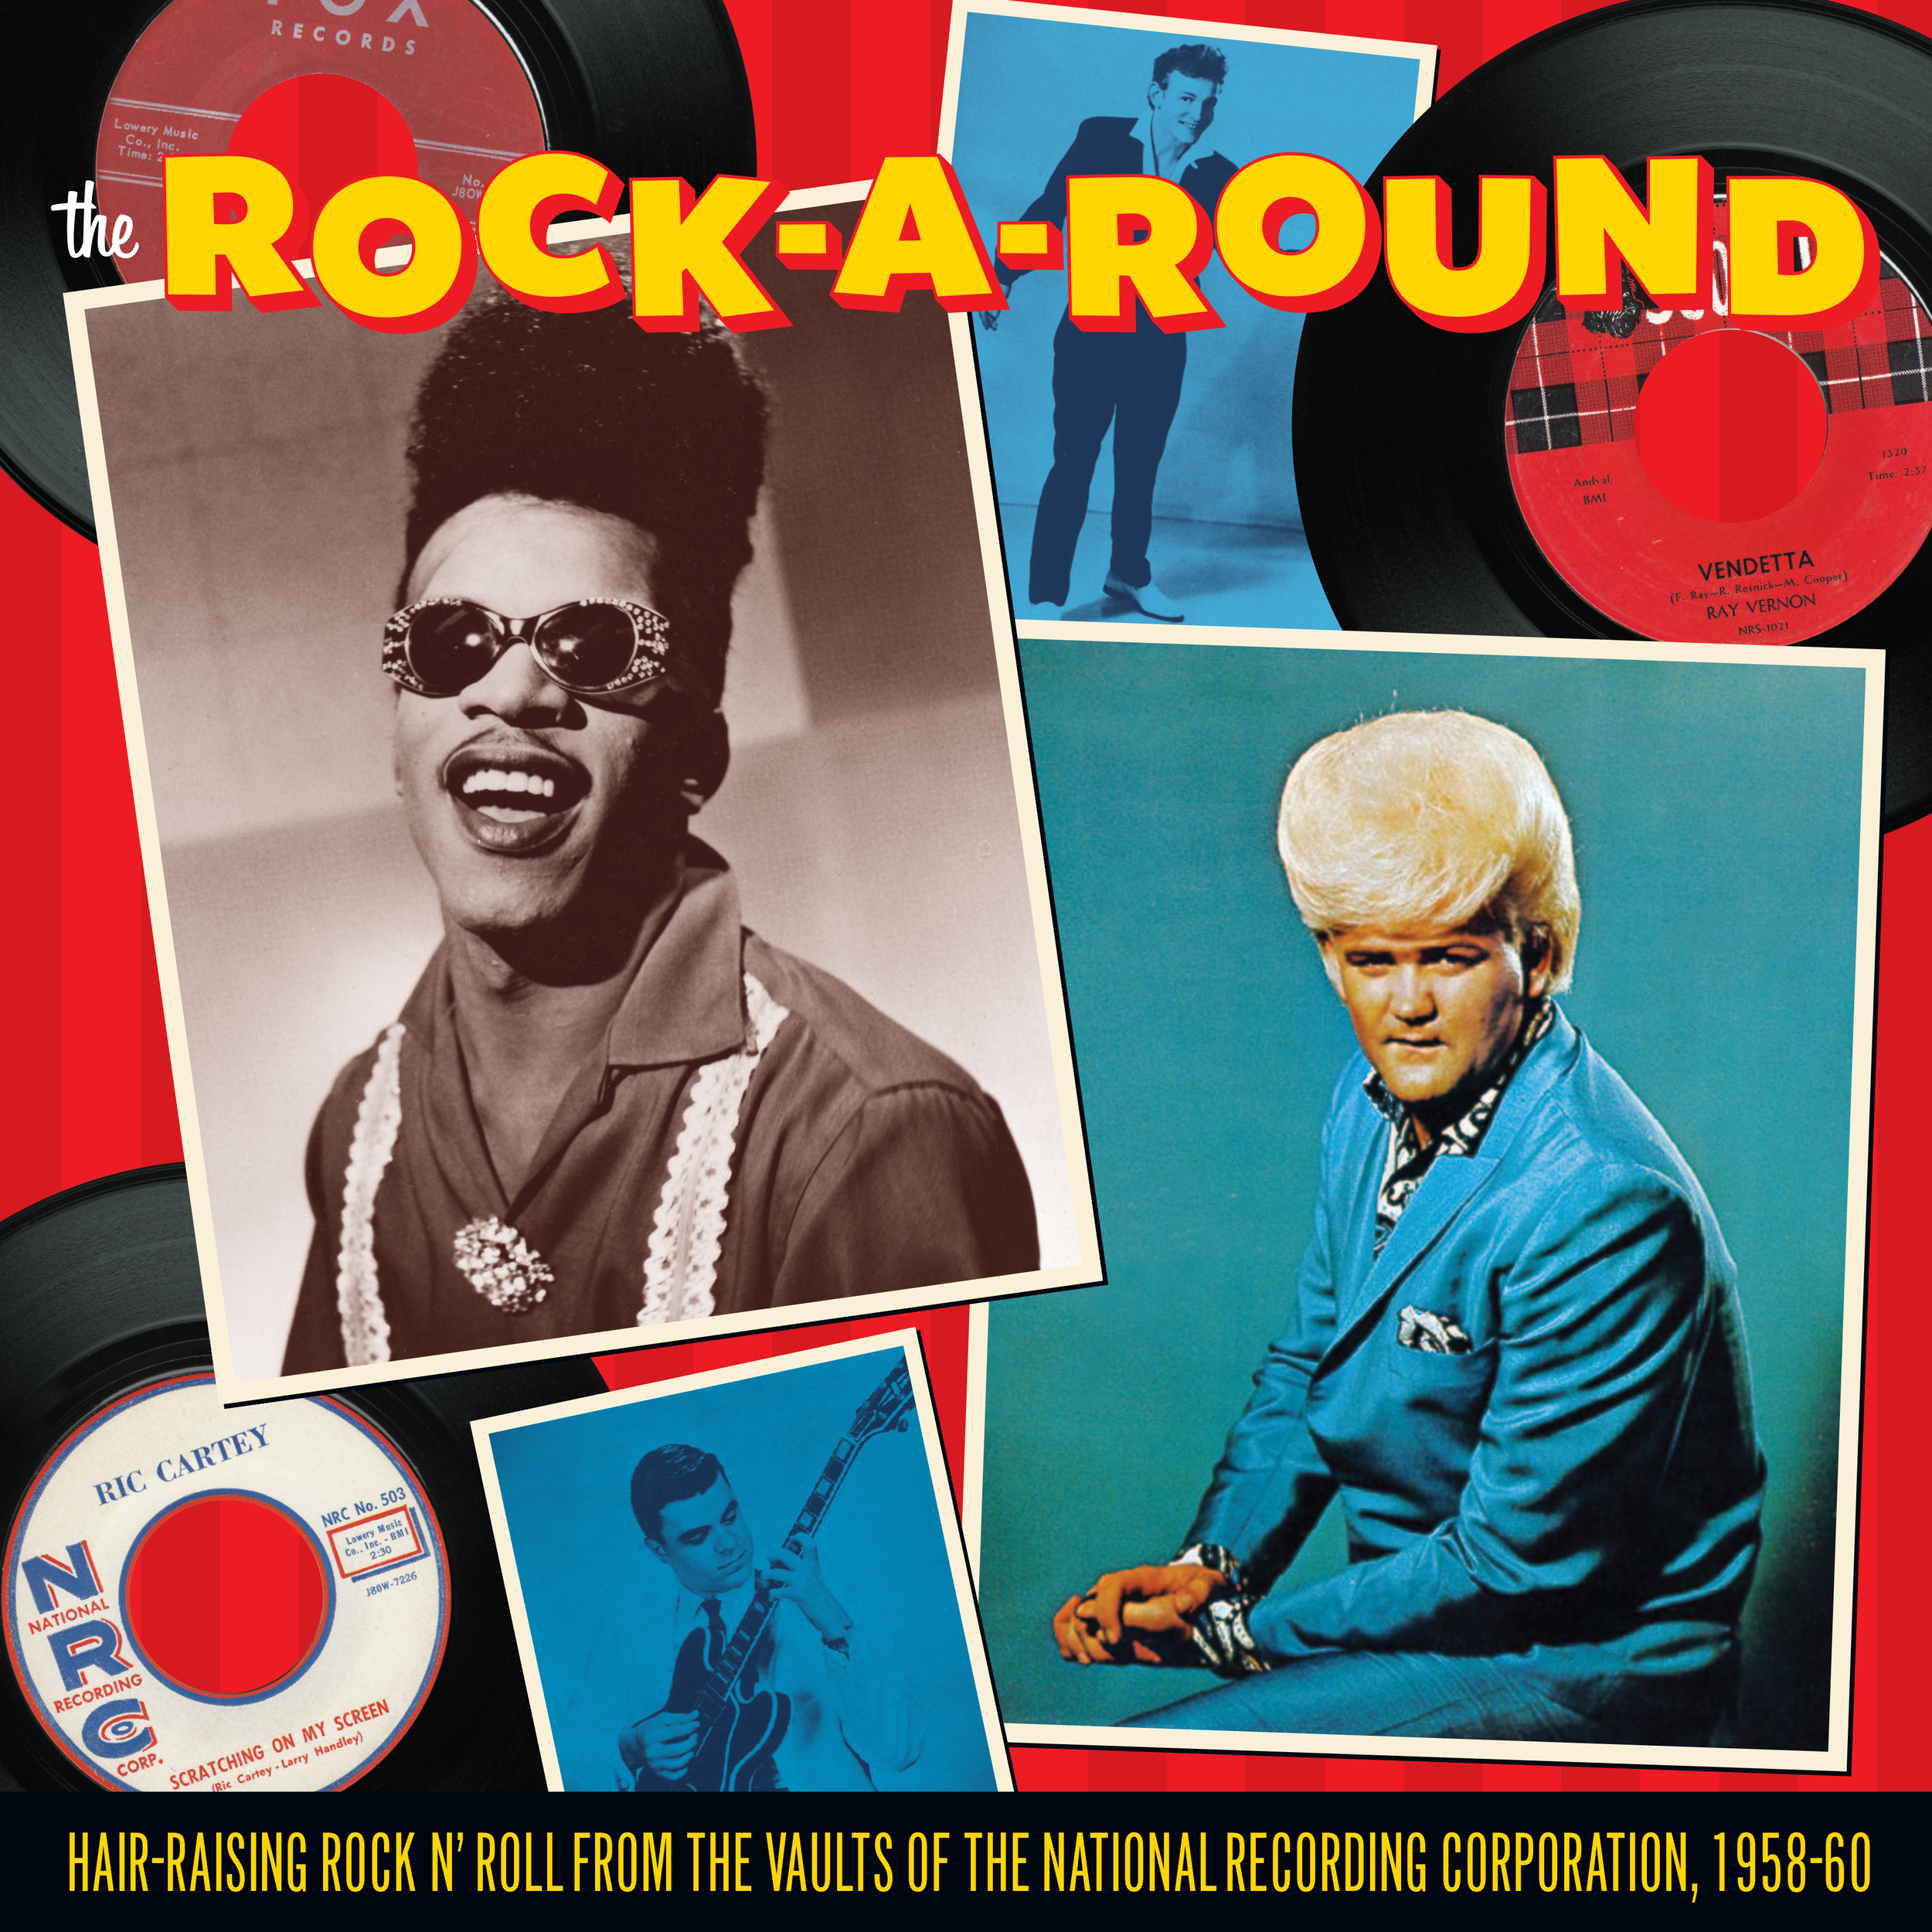 The Rock-A-Round LP cover